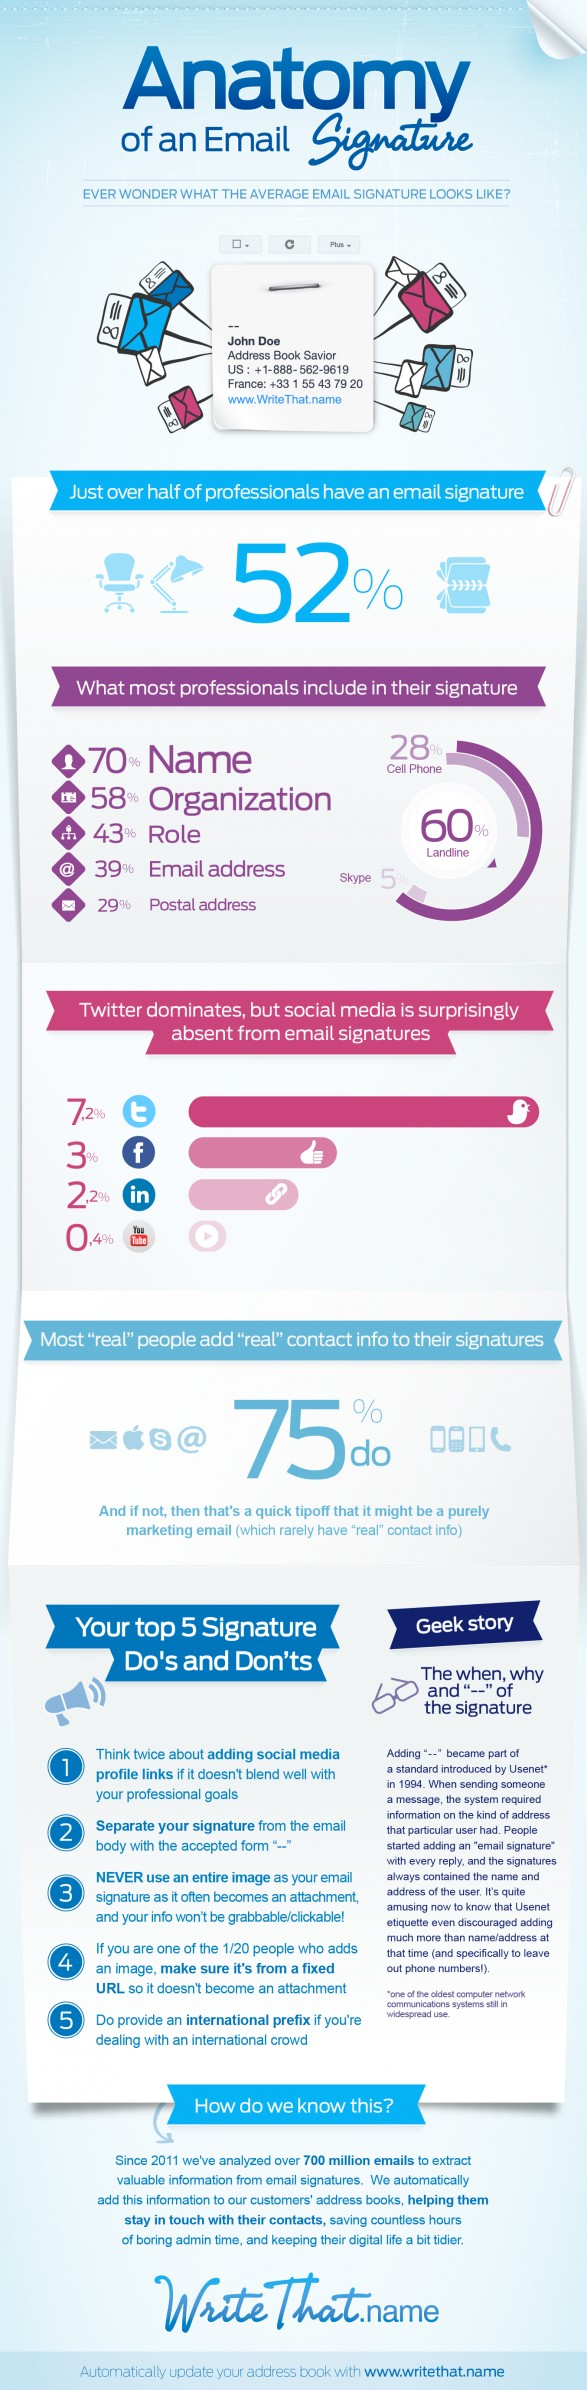 Elements Of An Email Signature [INFOGRAPHIC]